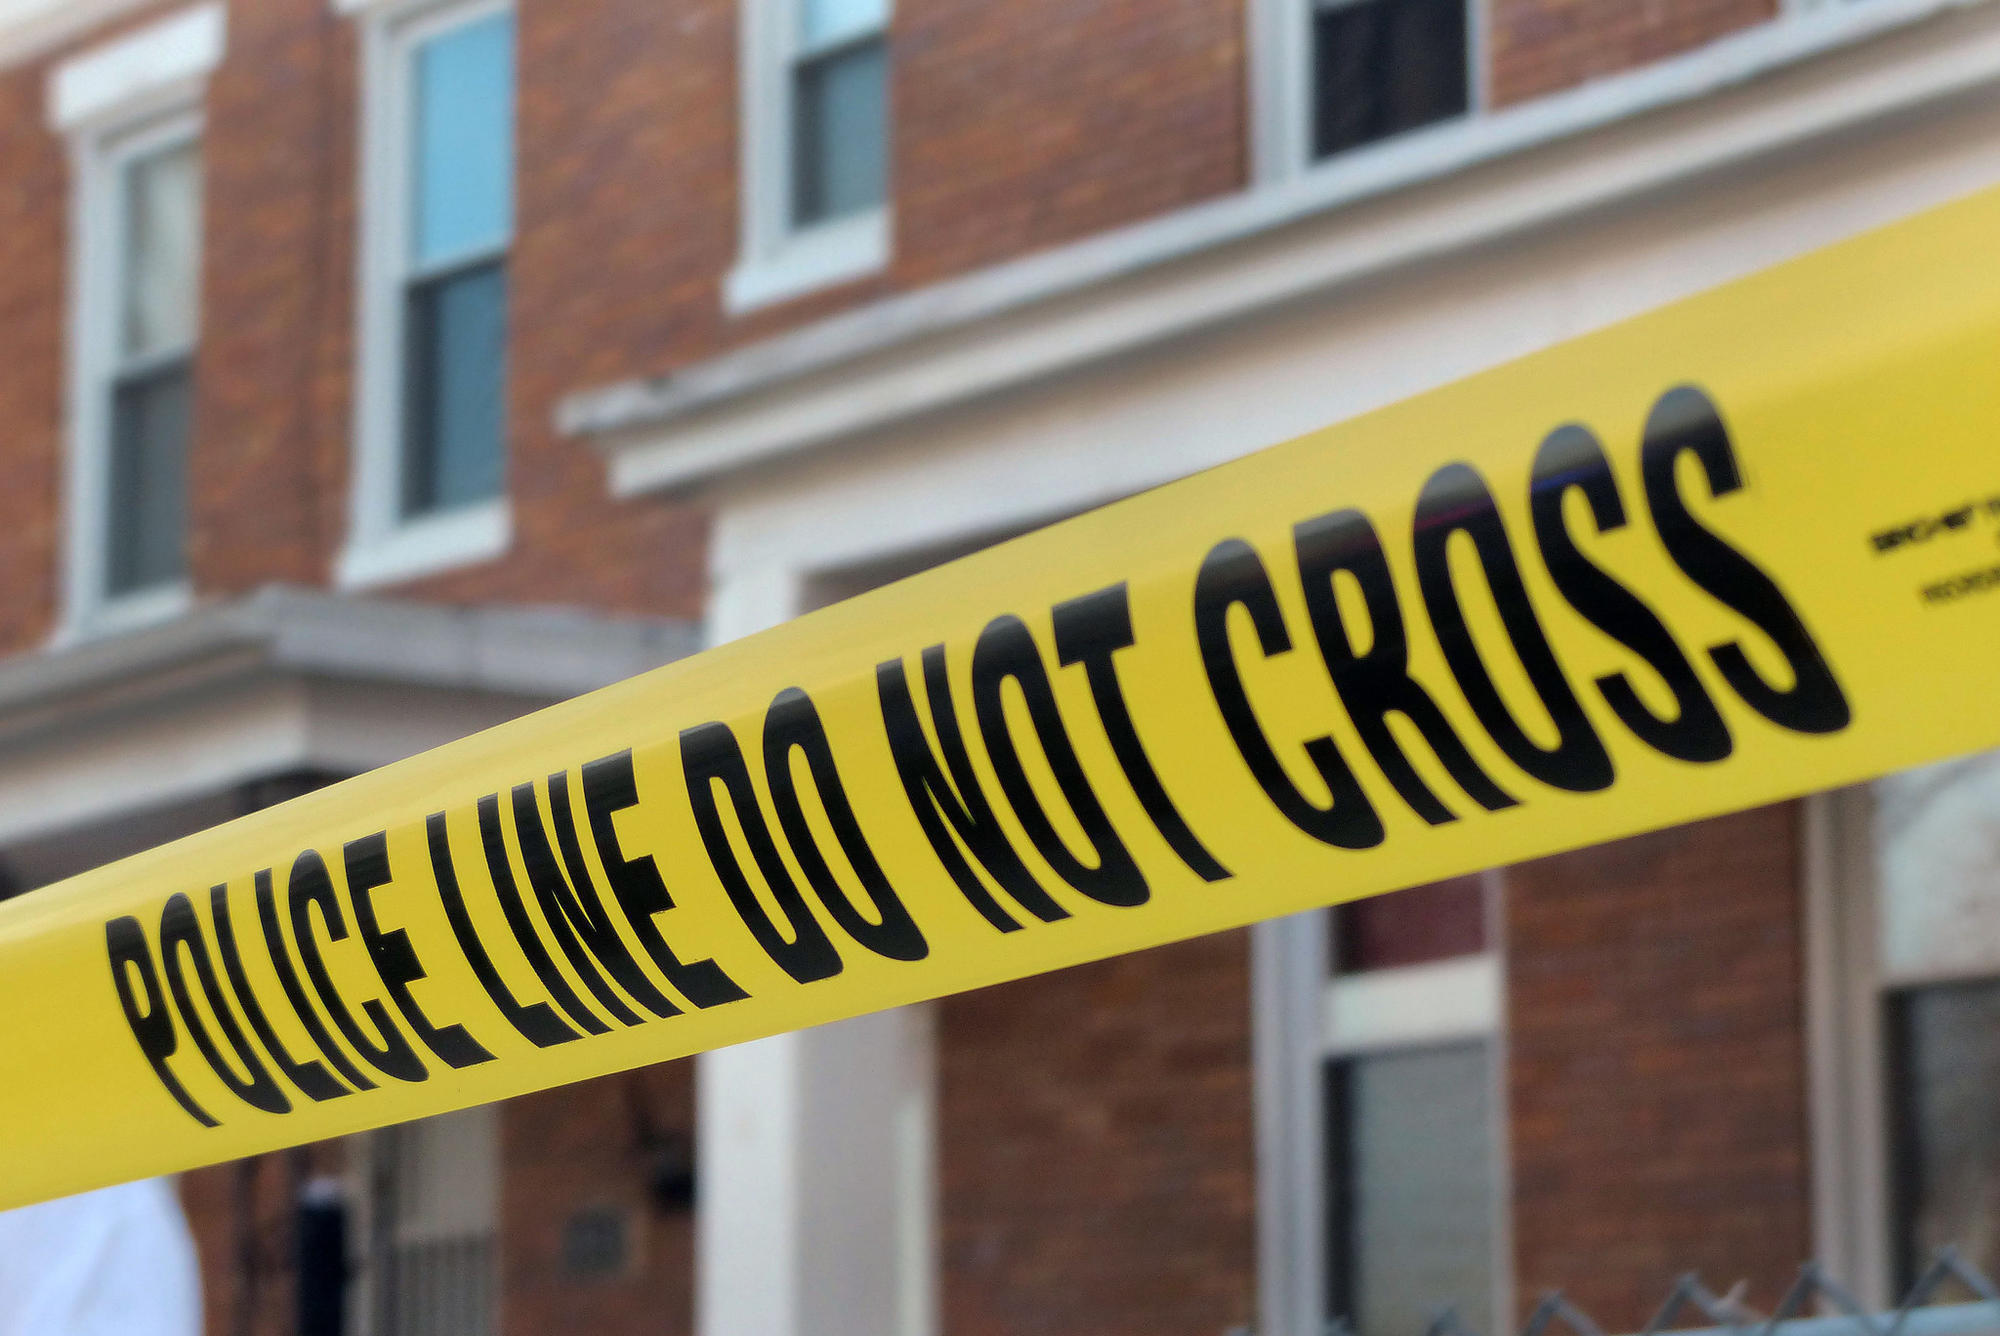 Baltimore man charged with murder, assault in September killing